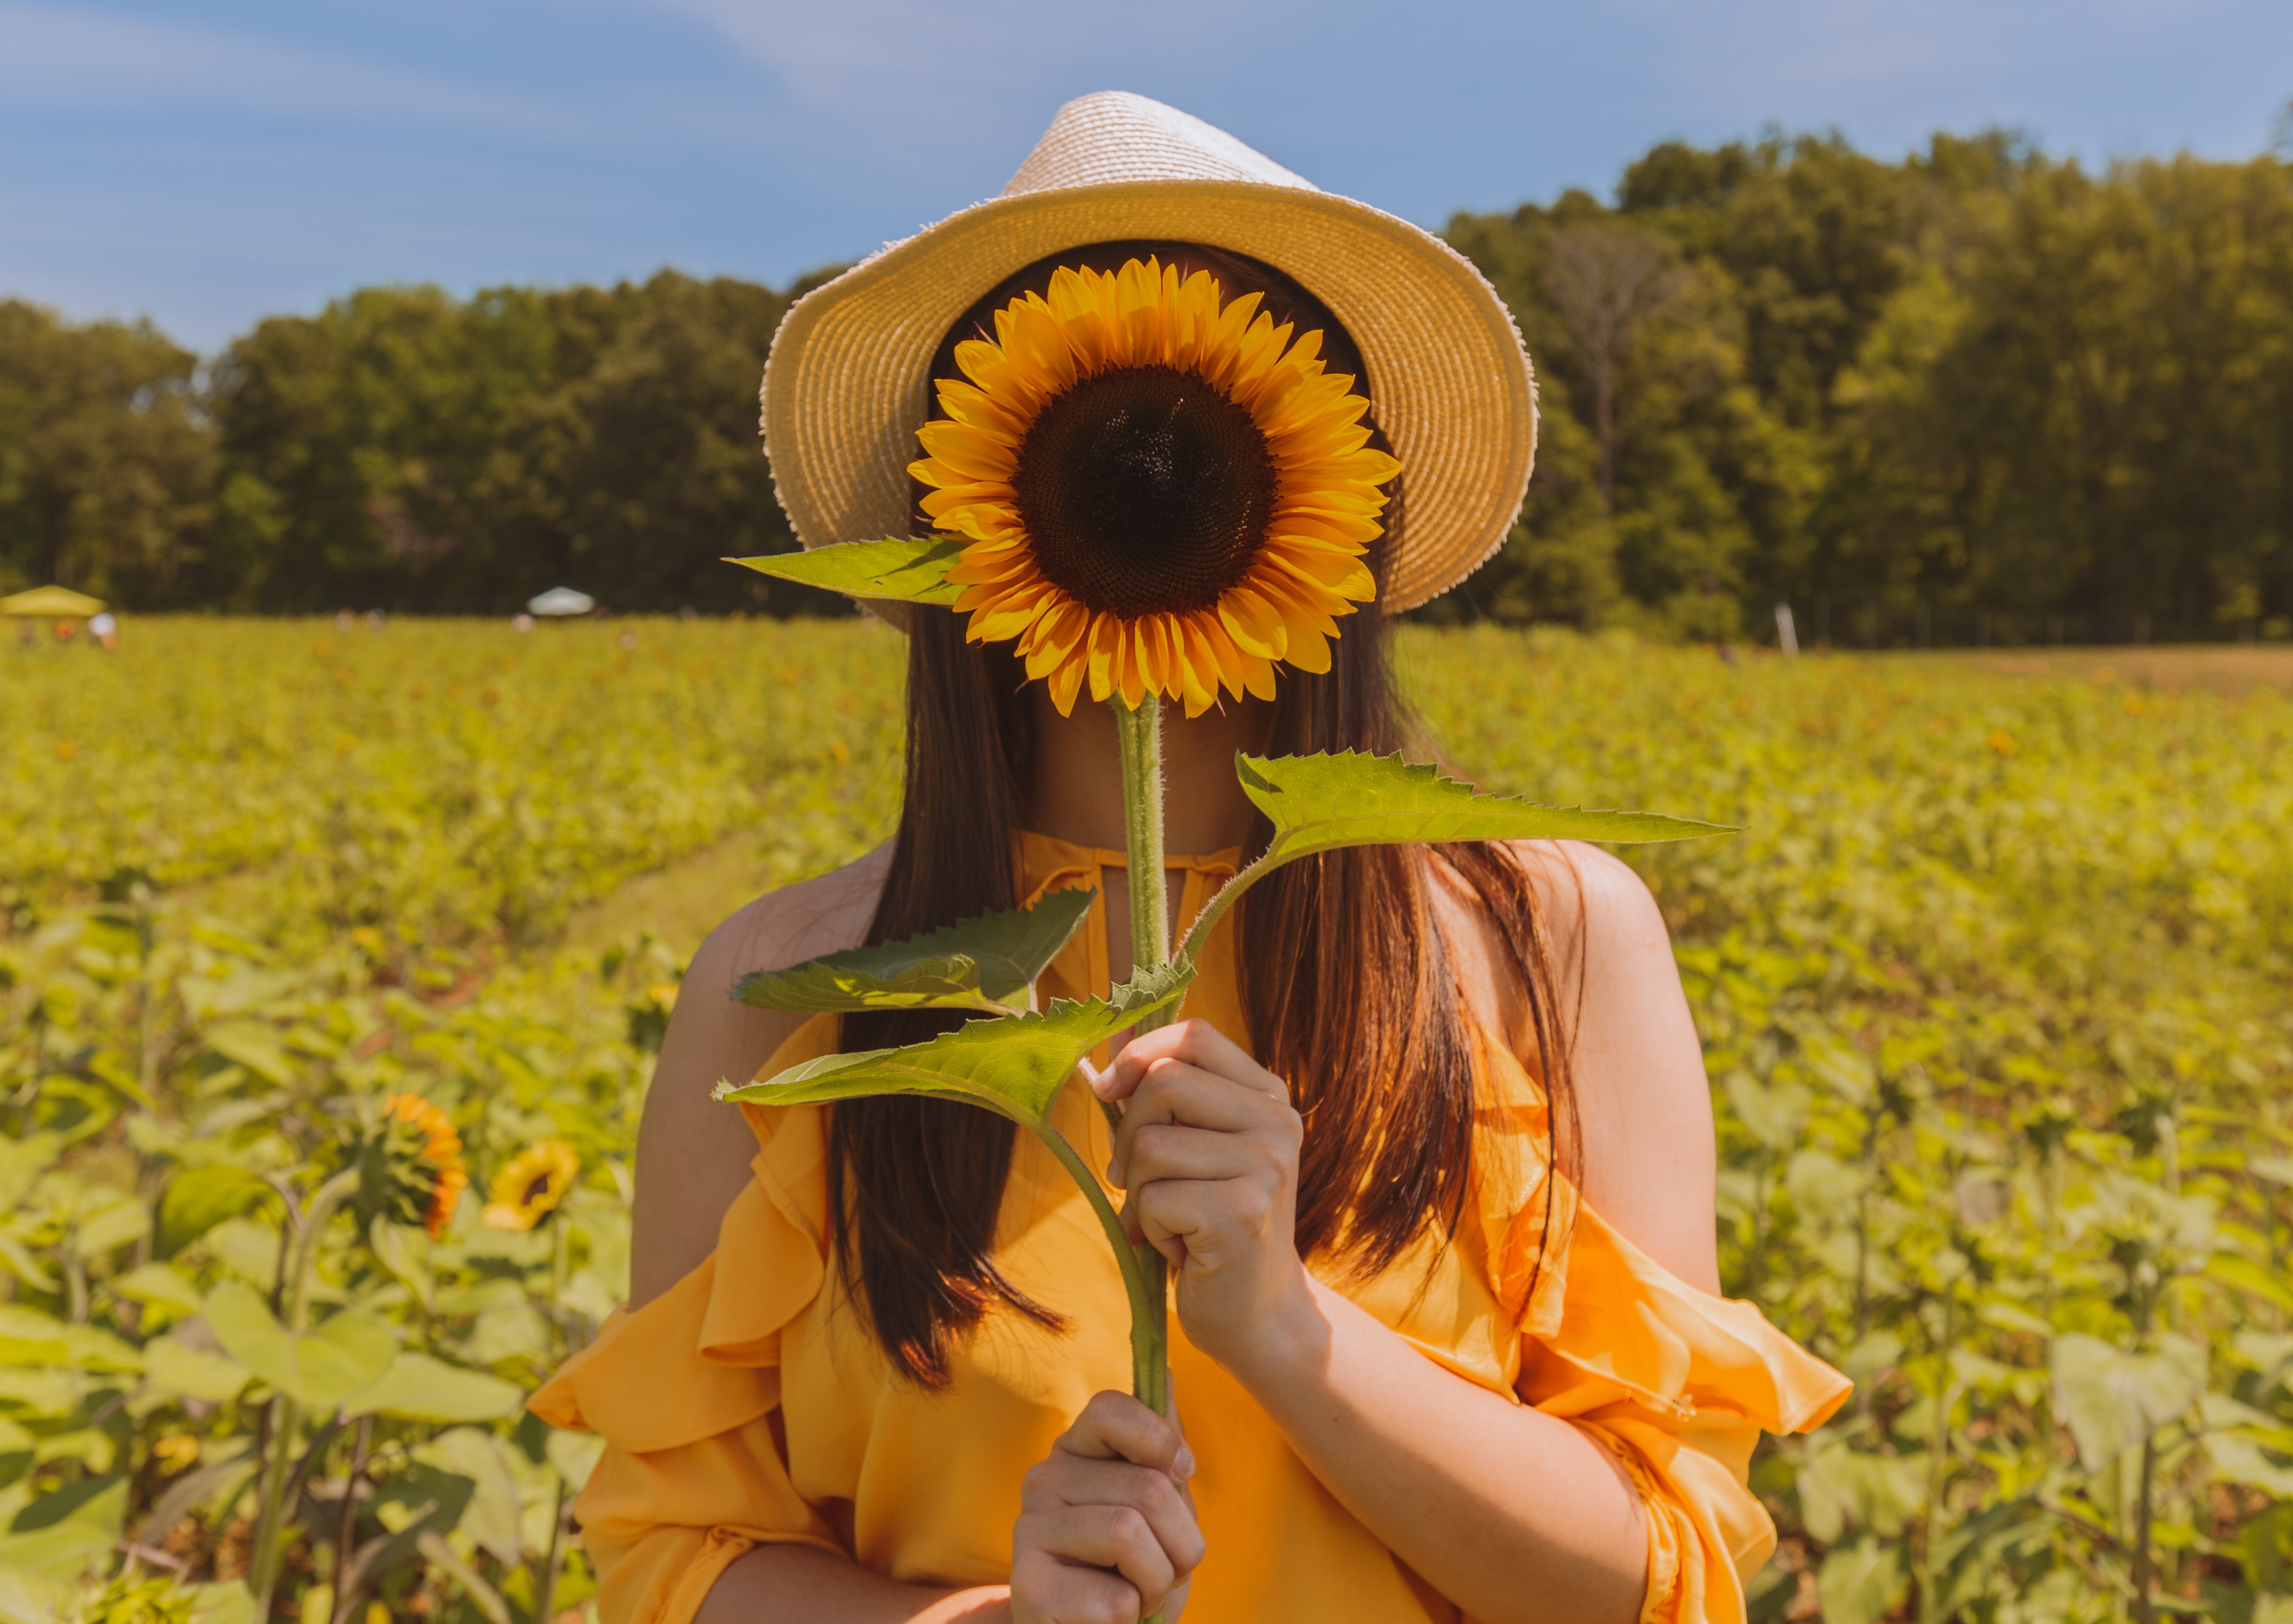 woman holding covering her face with sunflower at the field near trees during day